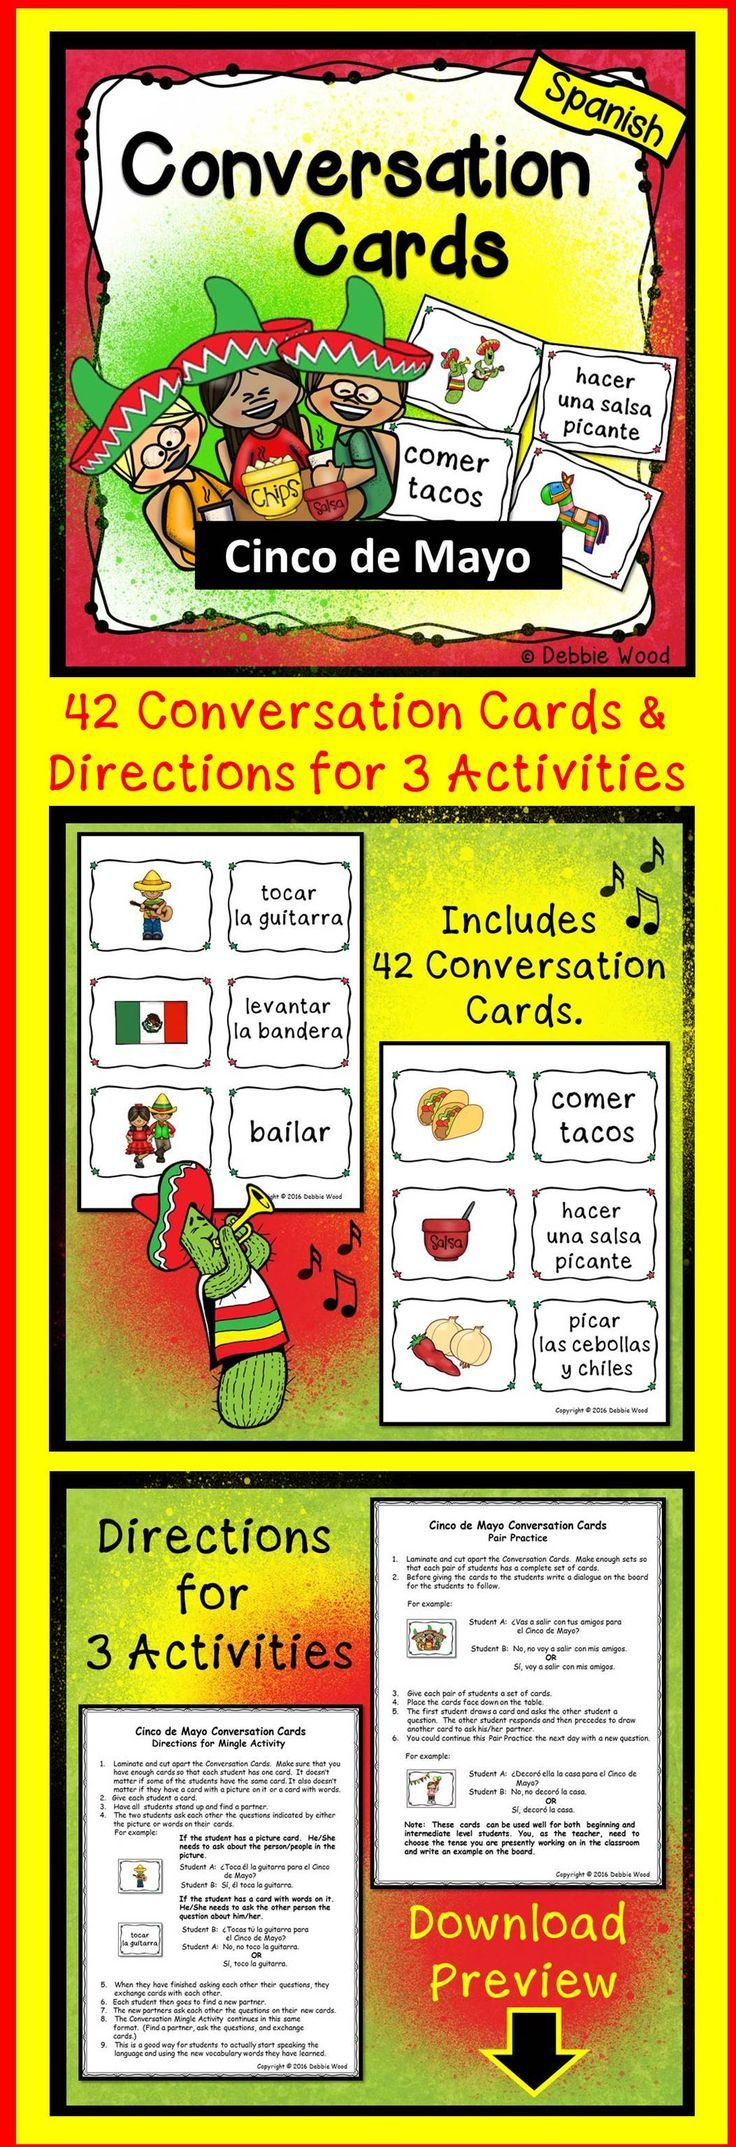 42 Spanish Conversation Cards to help celebrate Cinco de Mayo in my Spanish language class.  It also includes directions for 3 engaging activities.